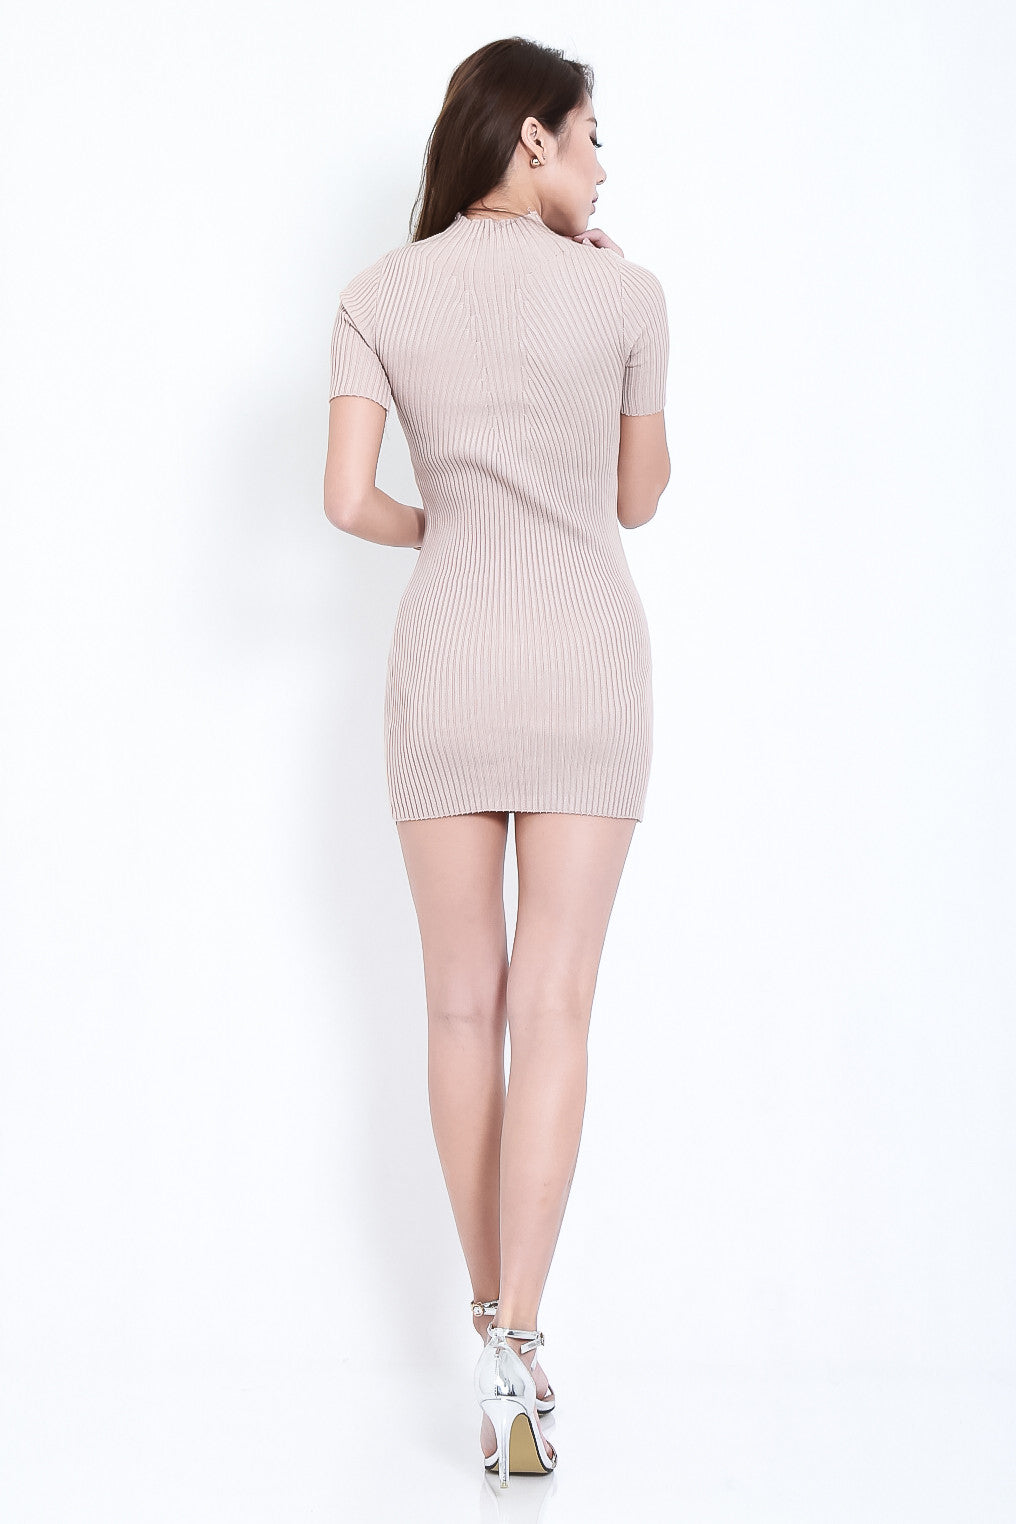 TAKE ME HIGHER RIBBED KNIT DRESS IN TAUPE